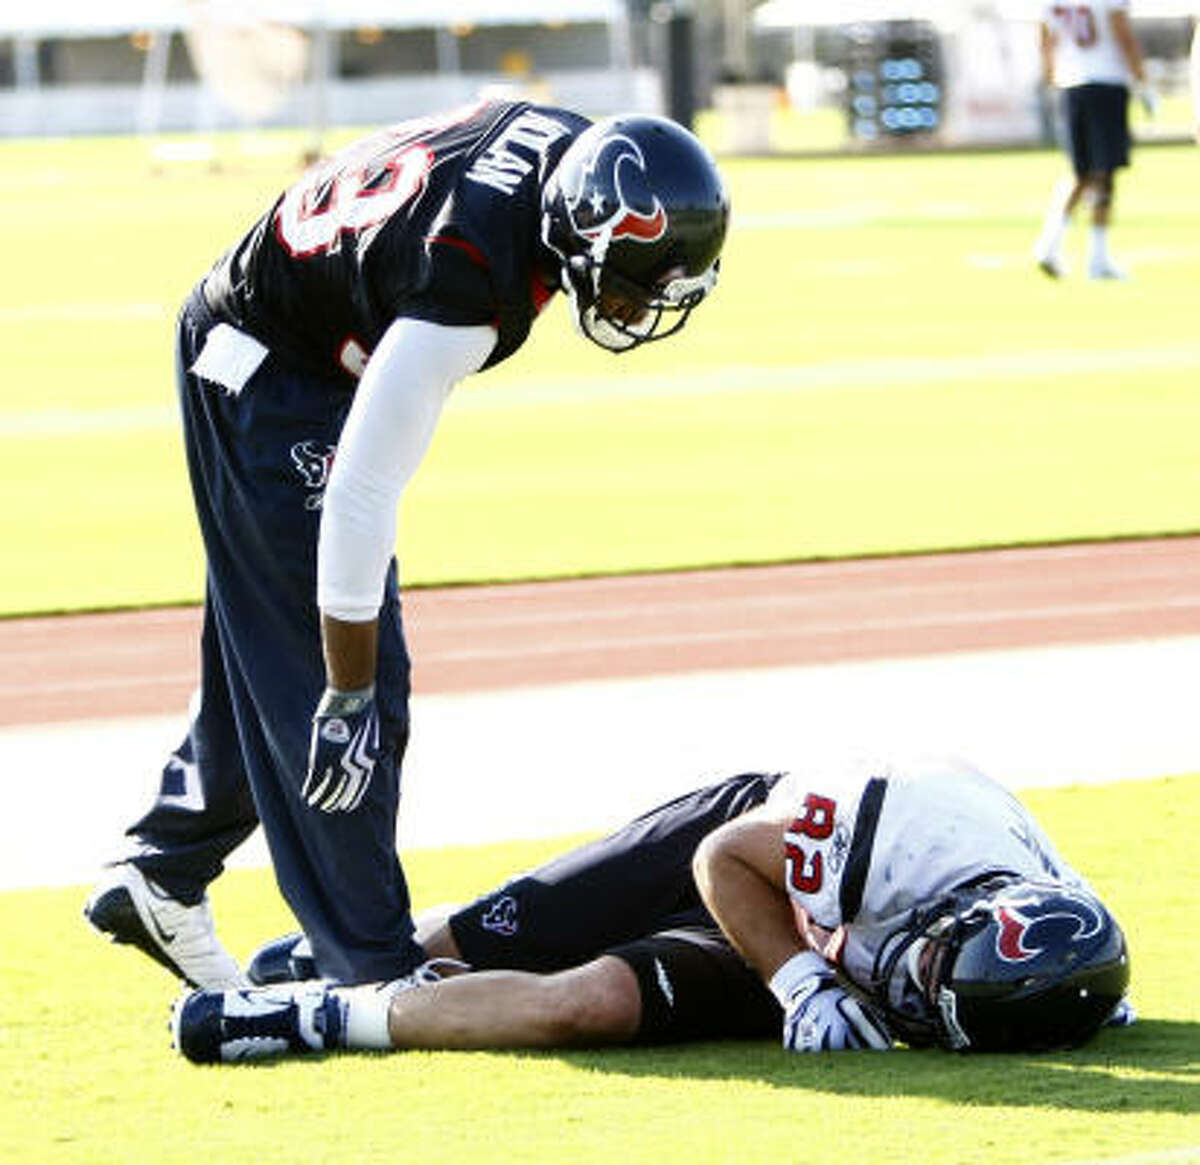 Texans tight end Derek Fine lies on the ground after getting injured on a play with teammate Troy Nolan.